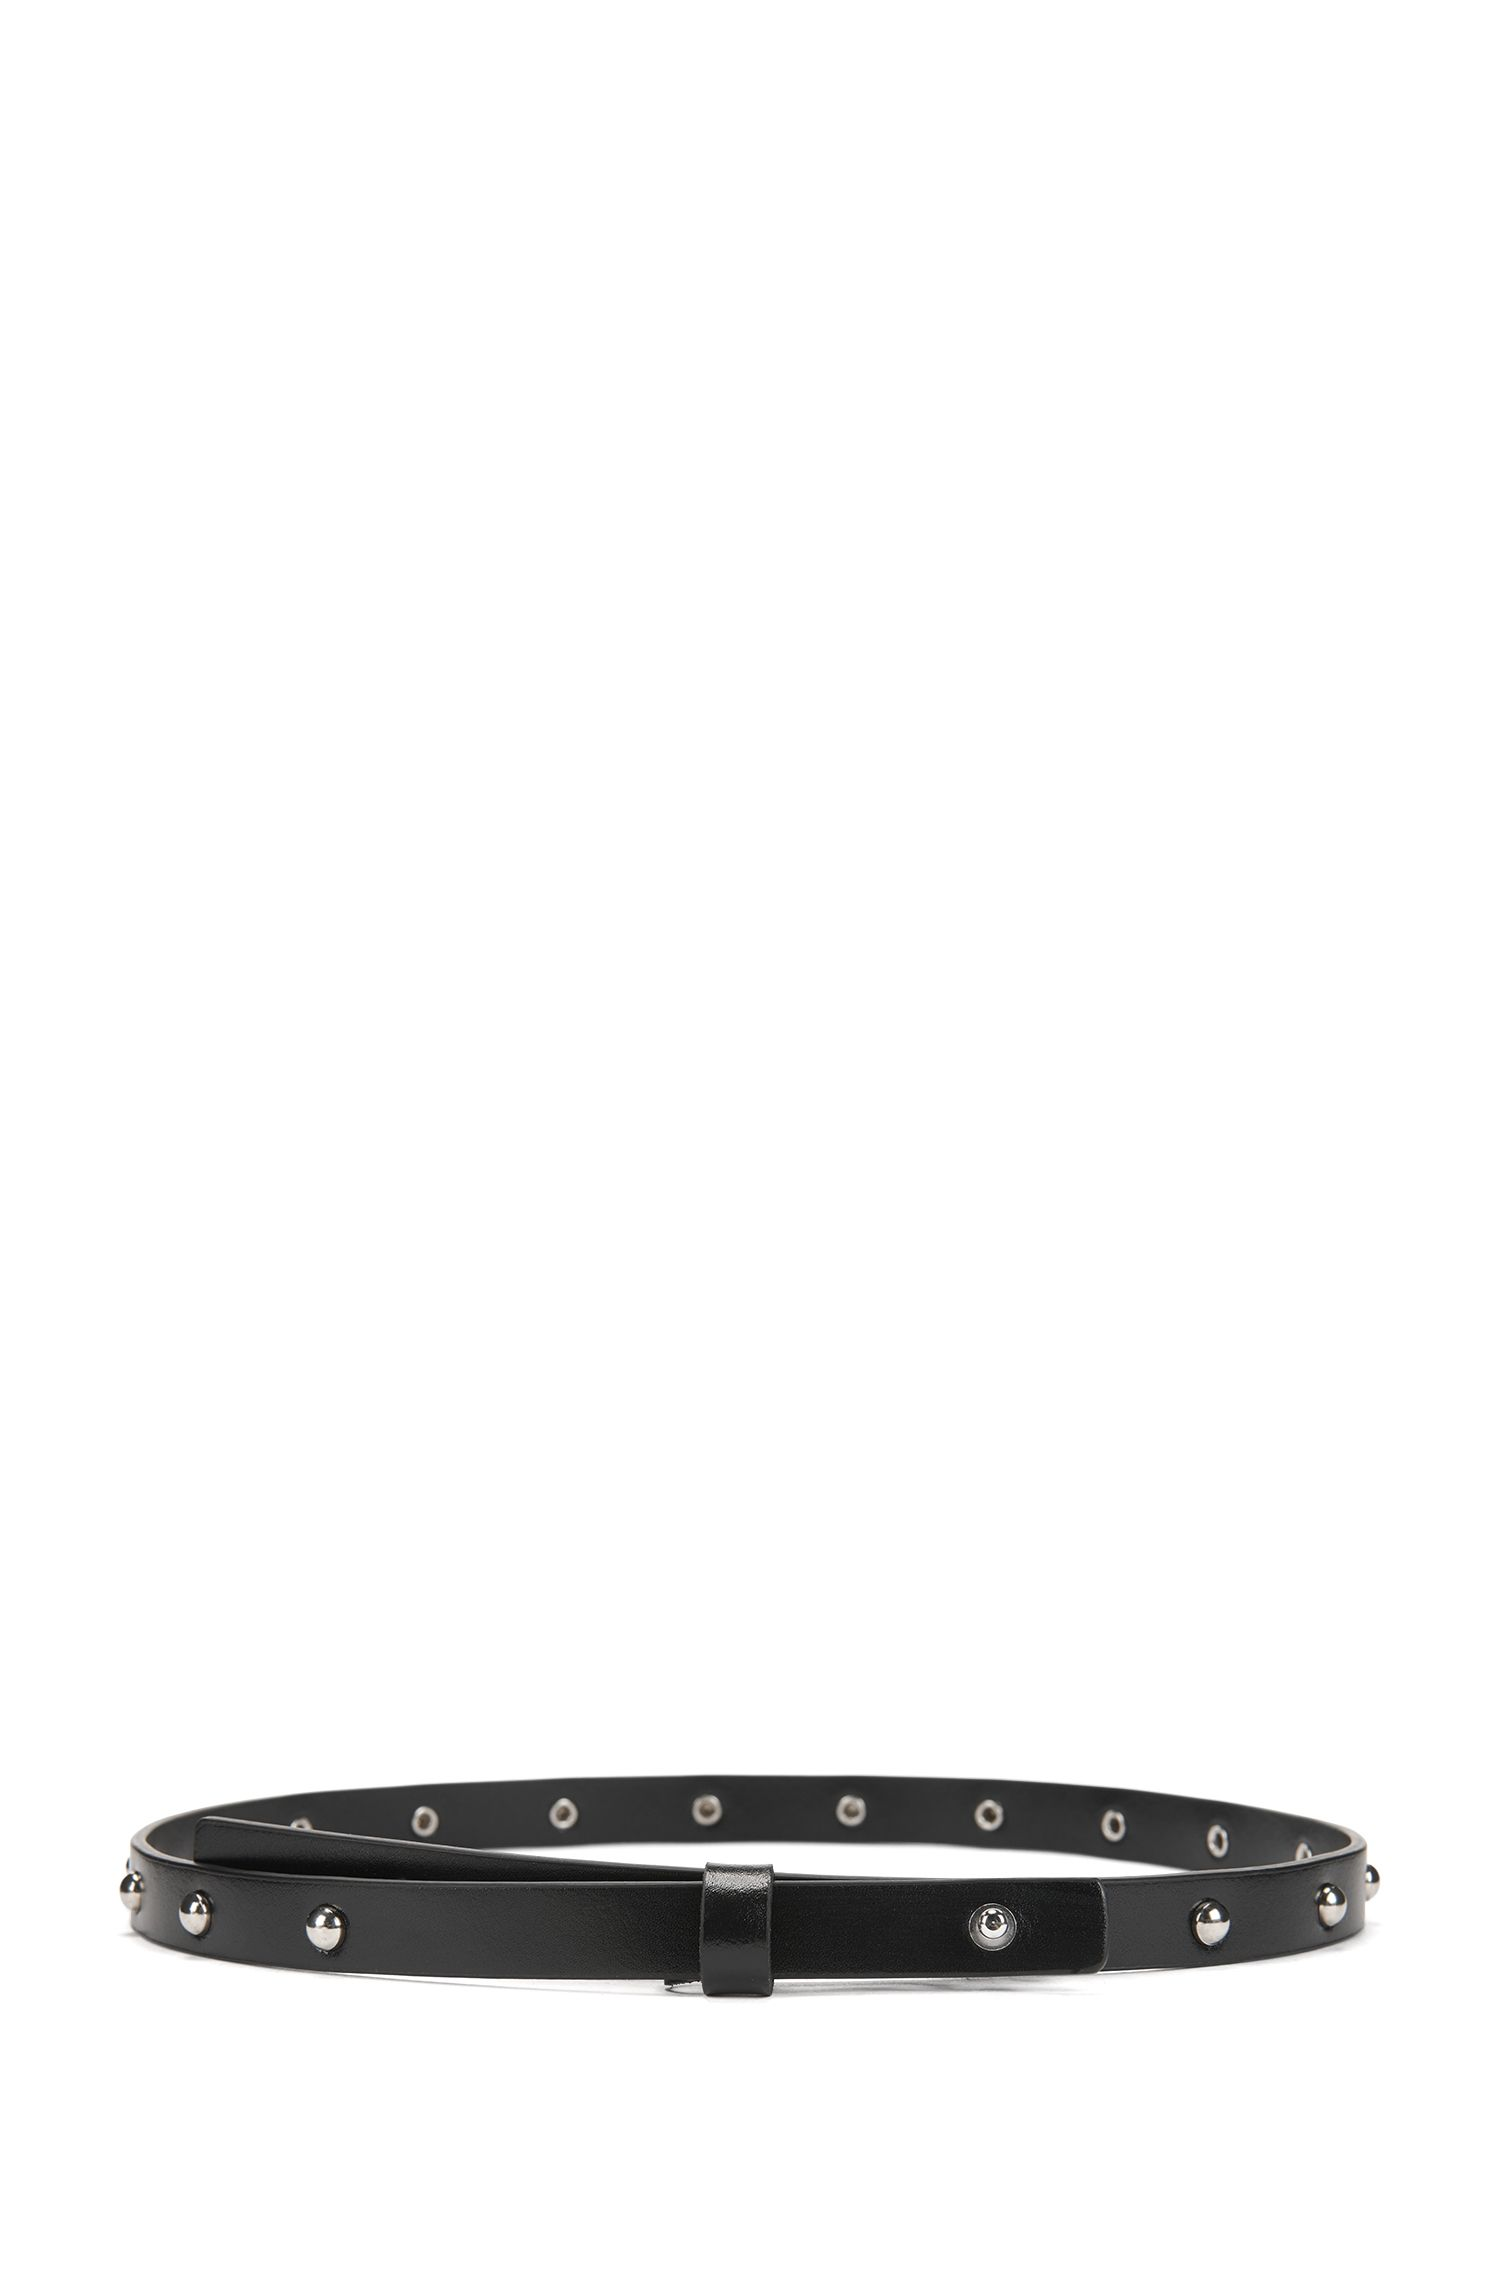 Italian-leather belt with stud detail, Black